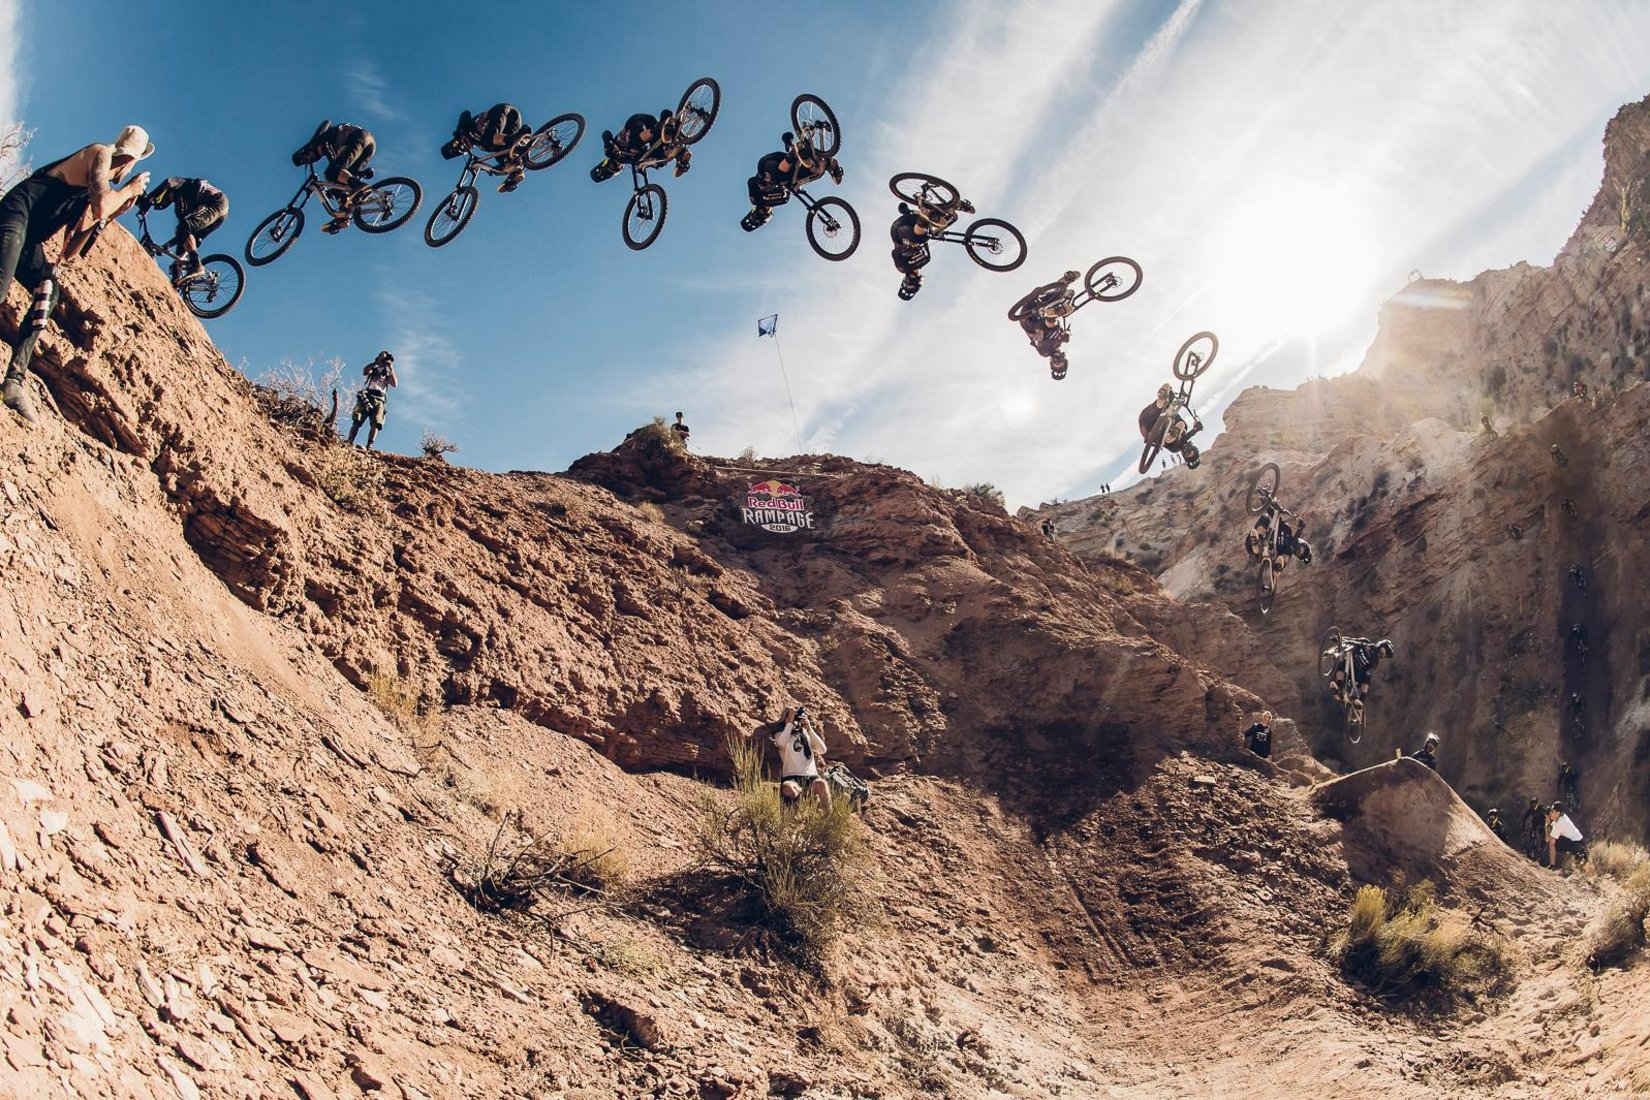 Brandon Semenuk at RedBull Rampage in Virgin, Utah